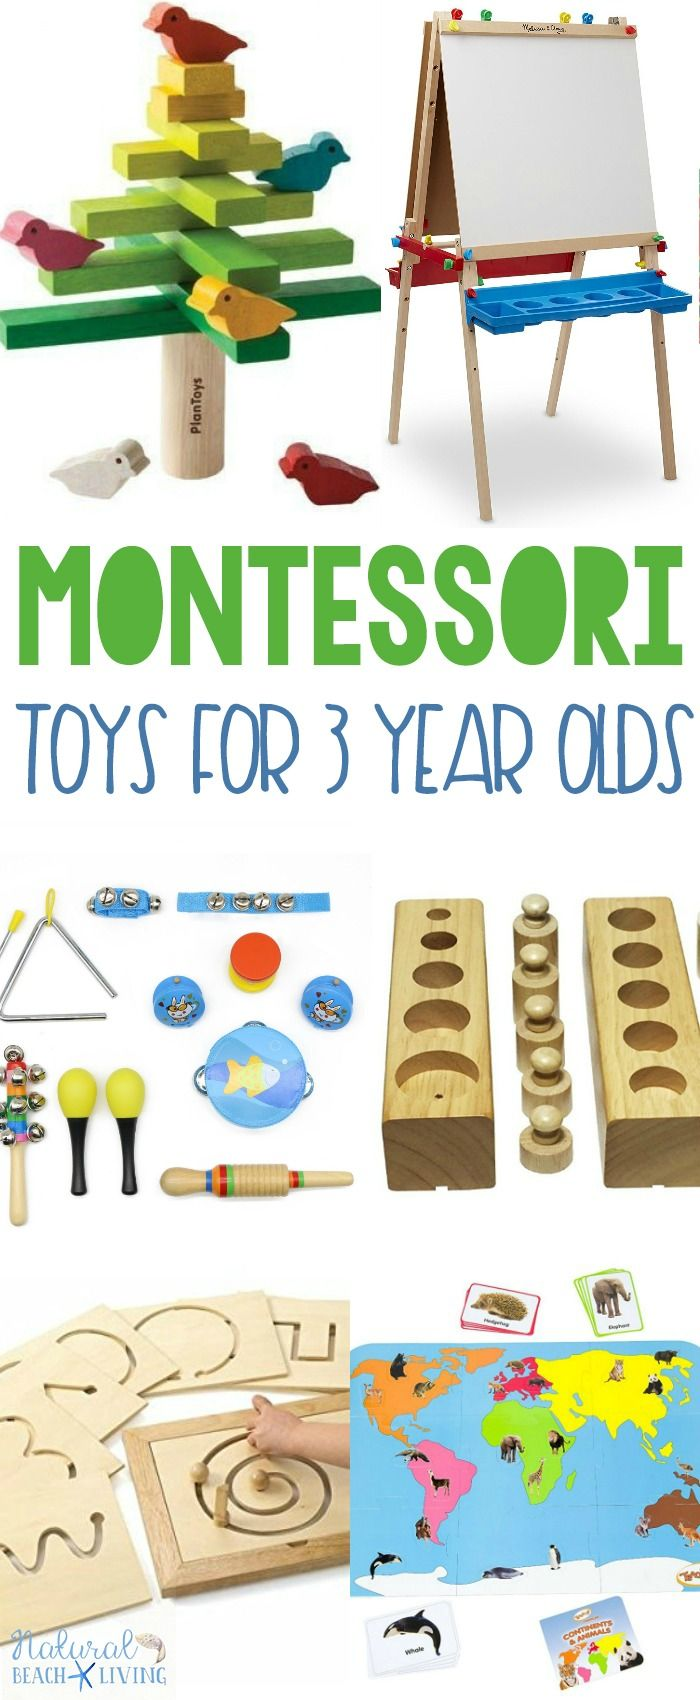 Montessori Gifts 3 Year Olds Love Natural Beach Living